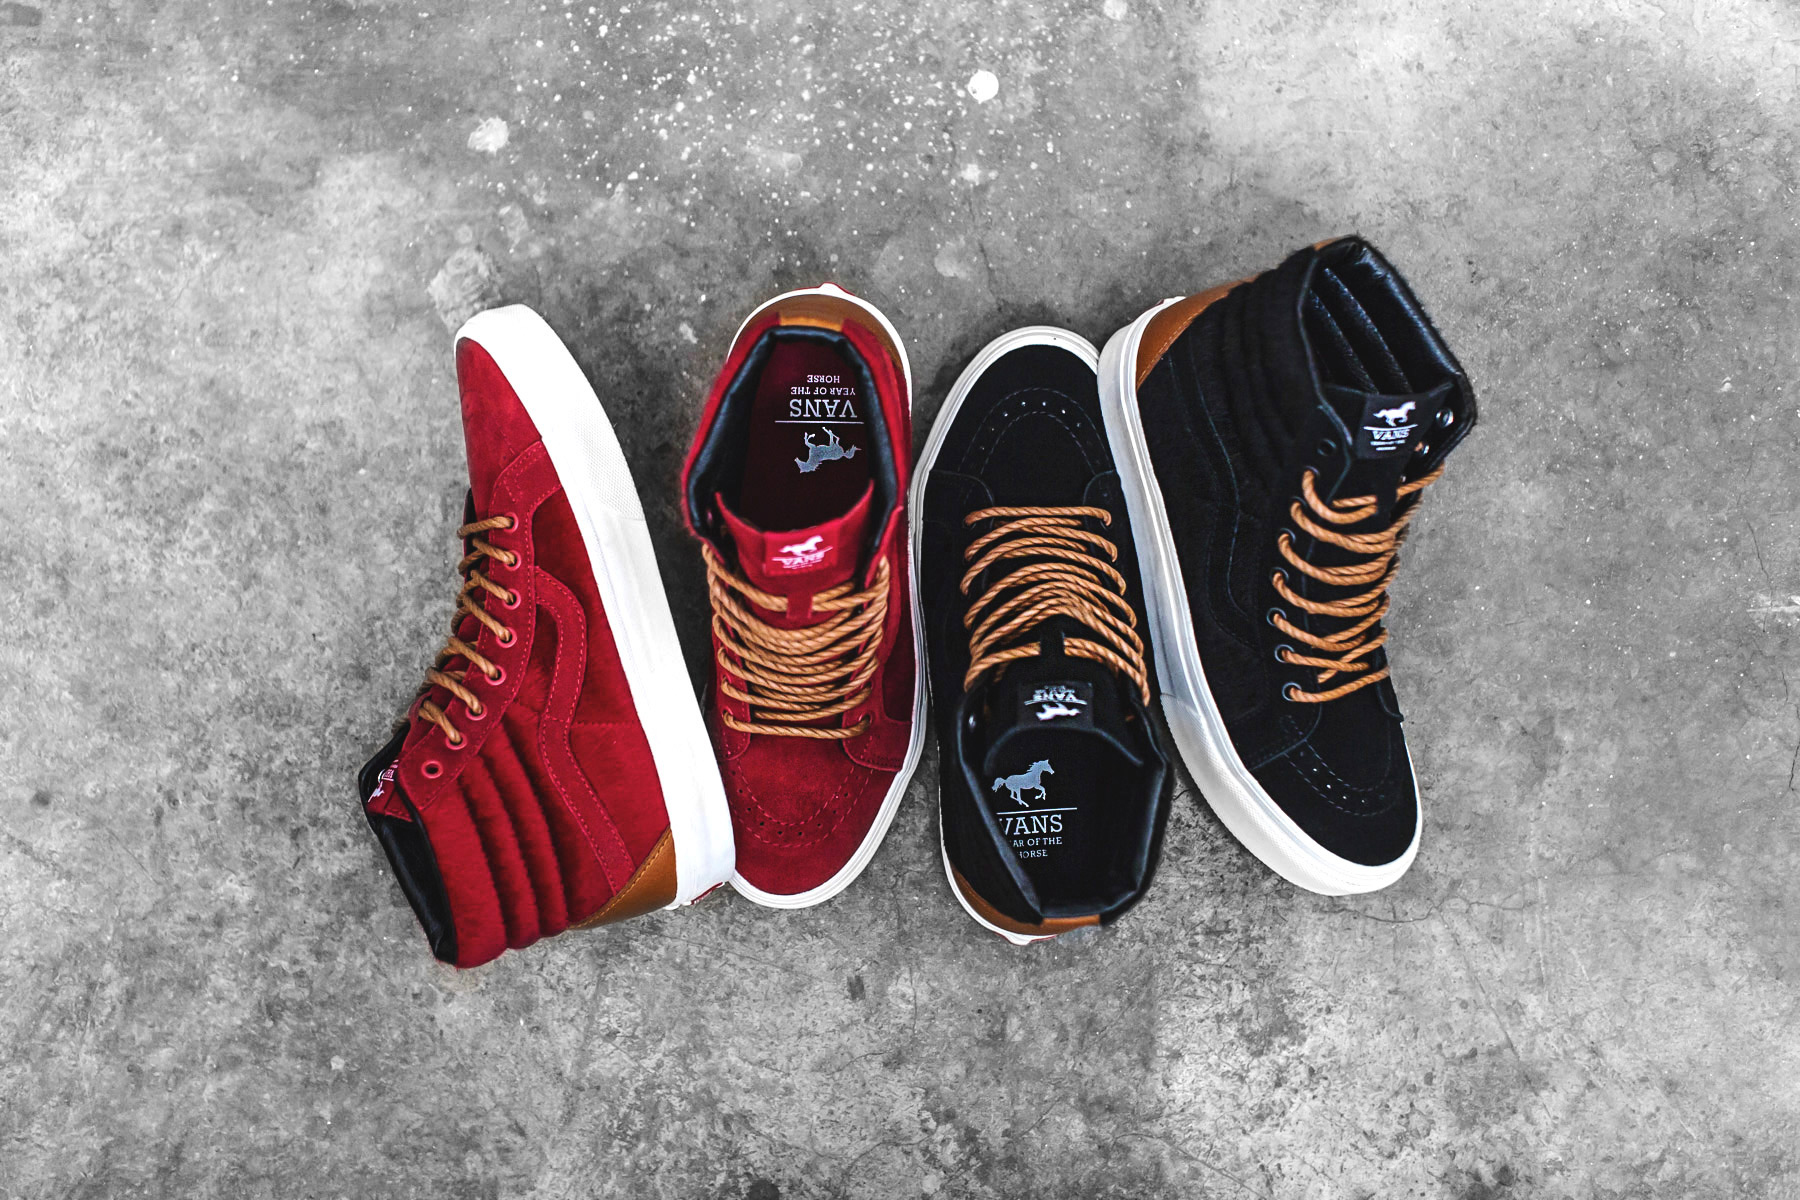 a closer look at the vans sk8 hi year of the horse pack